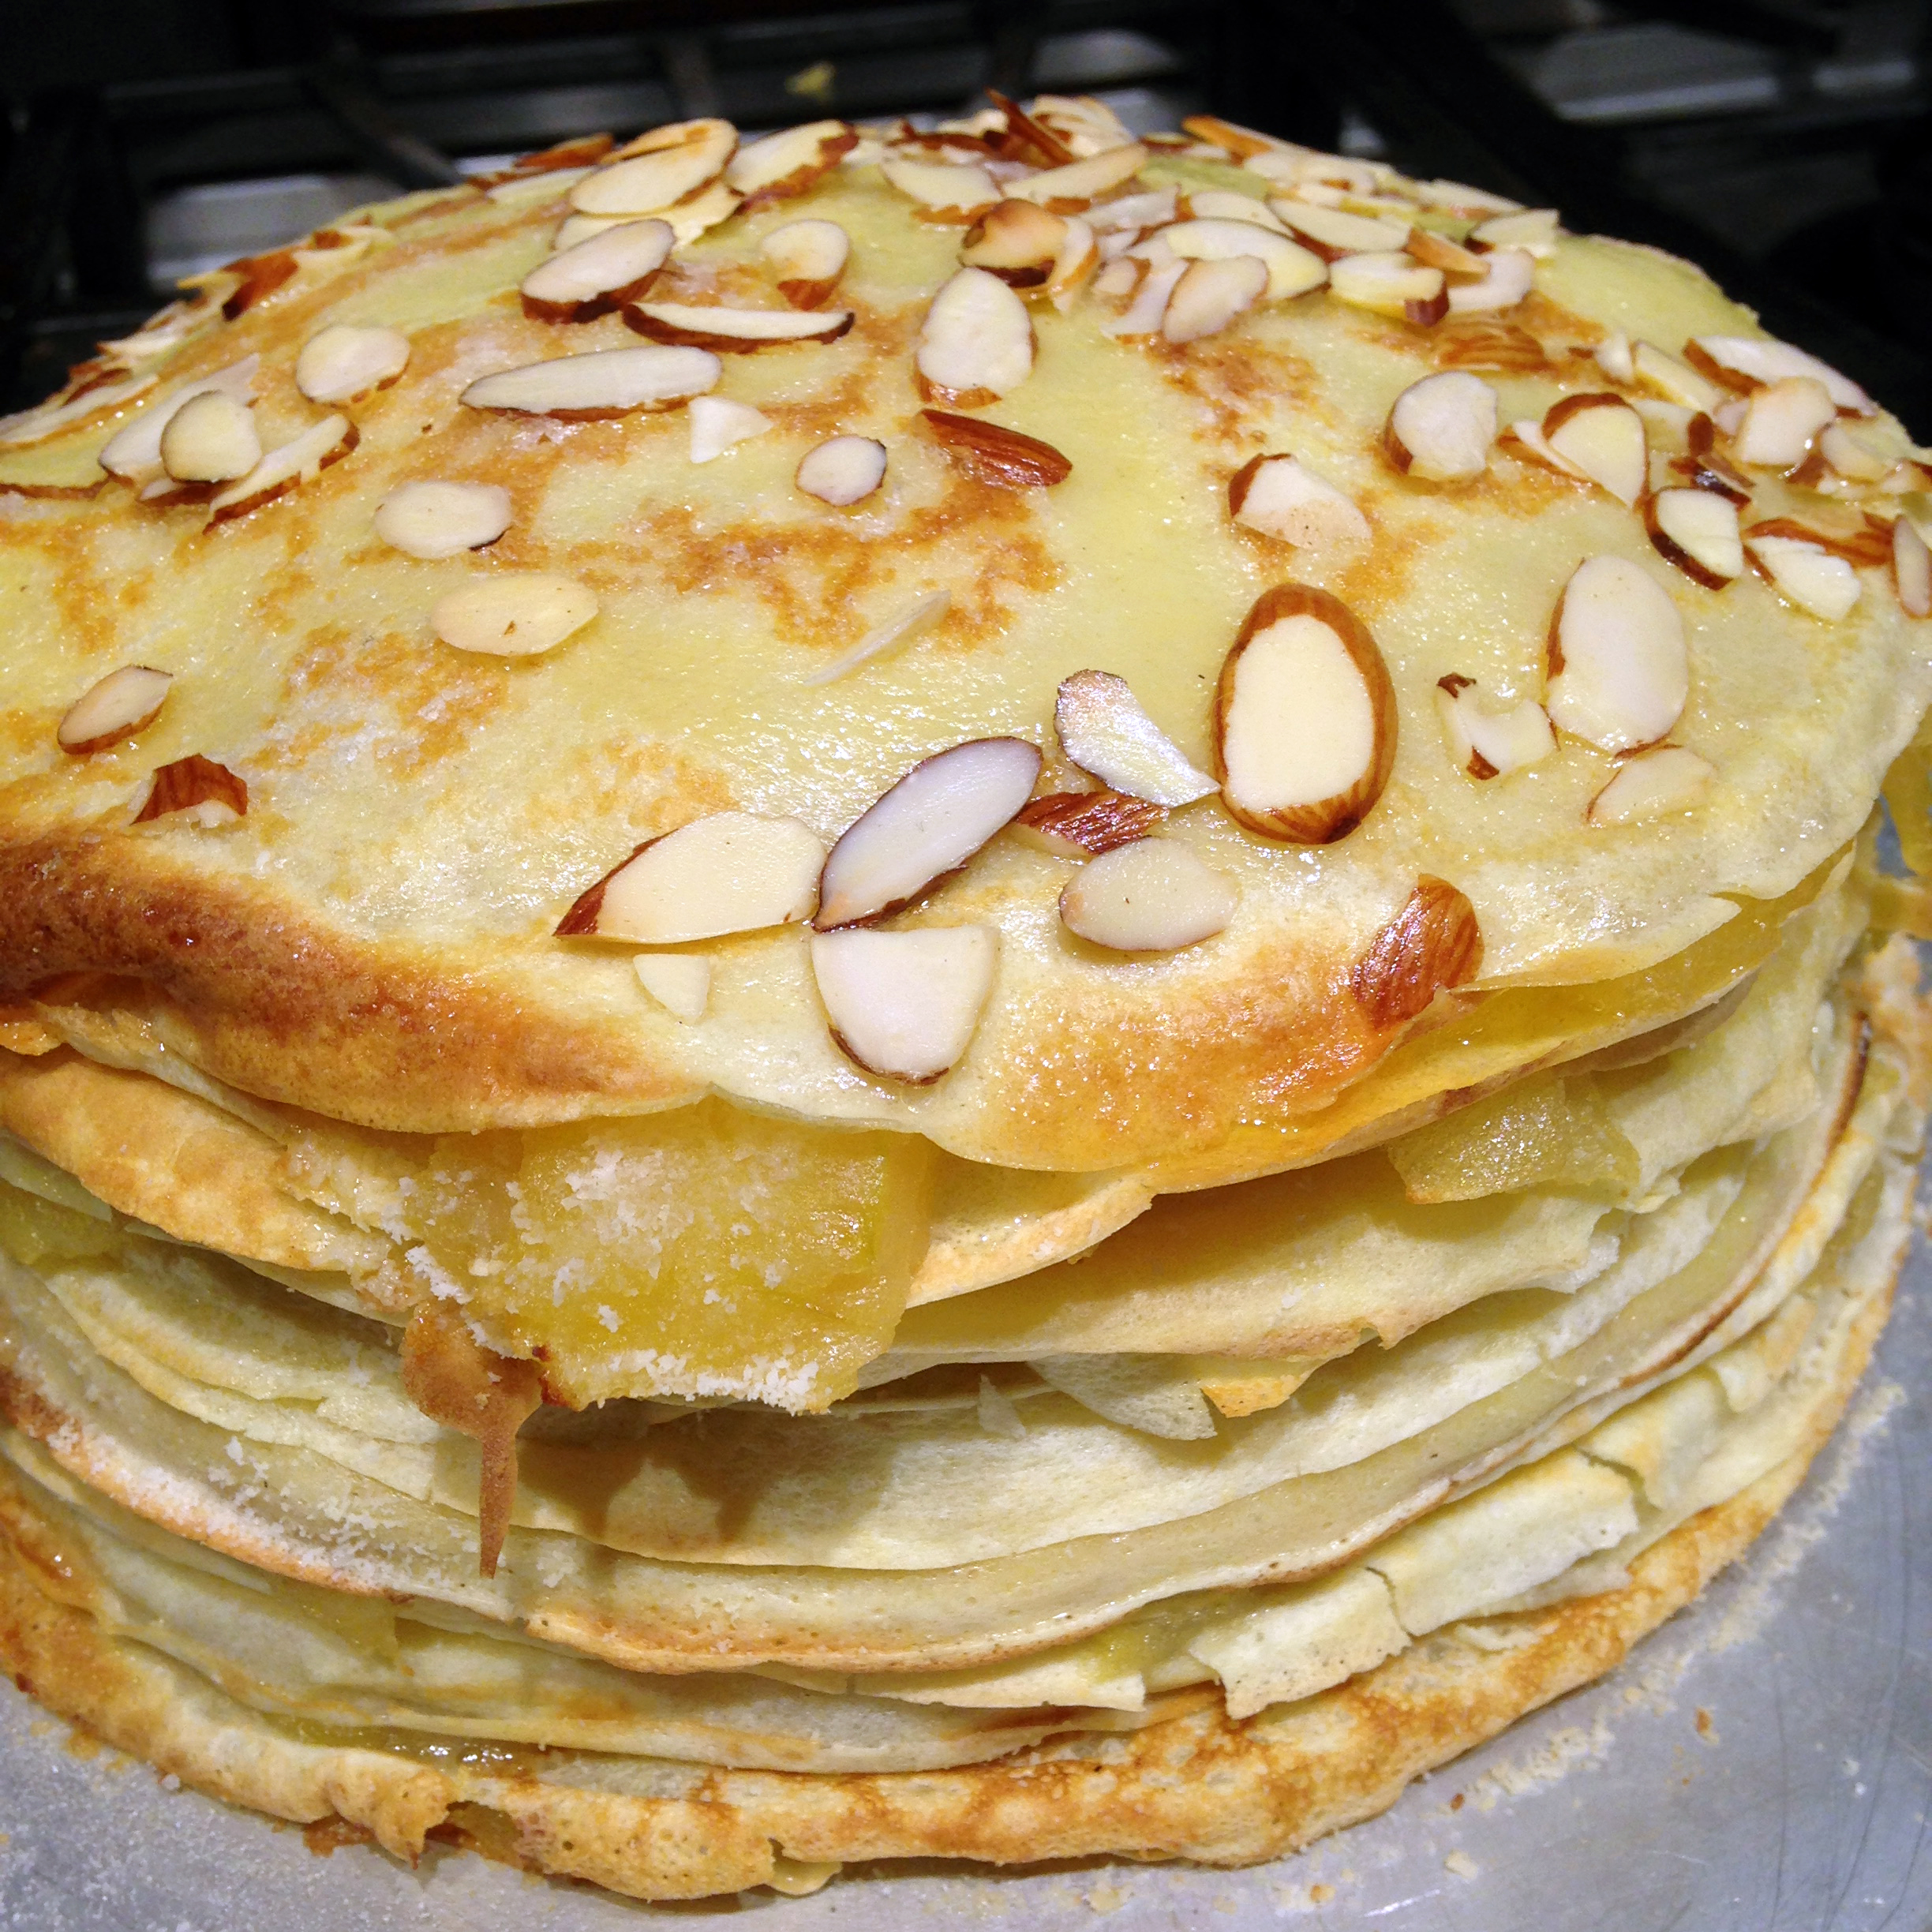 Crepes, the only flat thing we made all day, were layered with cooked apples and almonds and stacked into a Gateaux a la Normande.